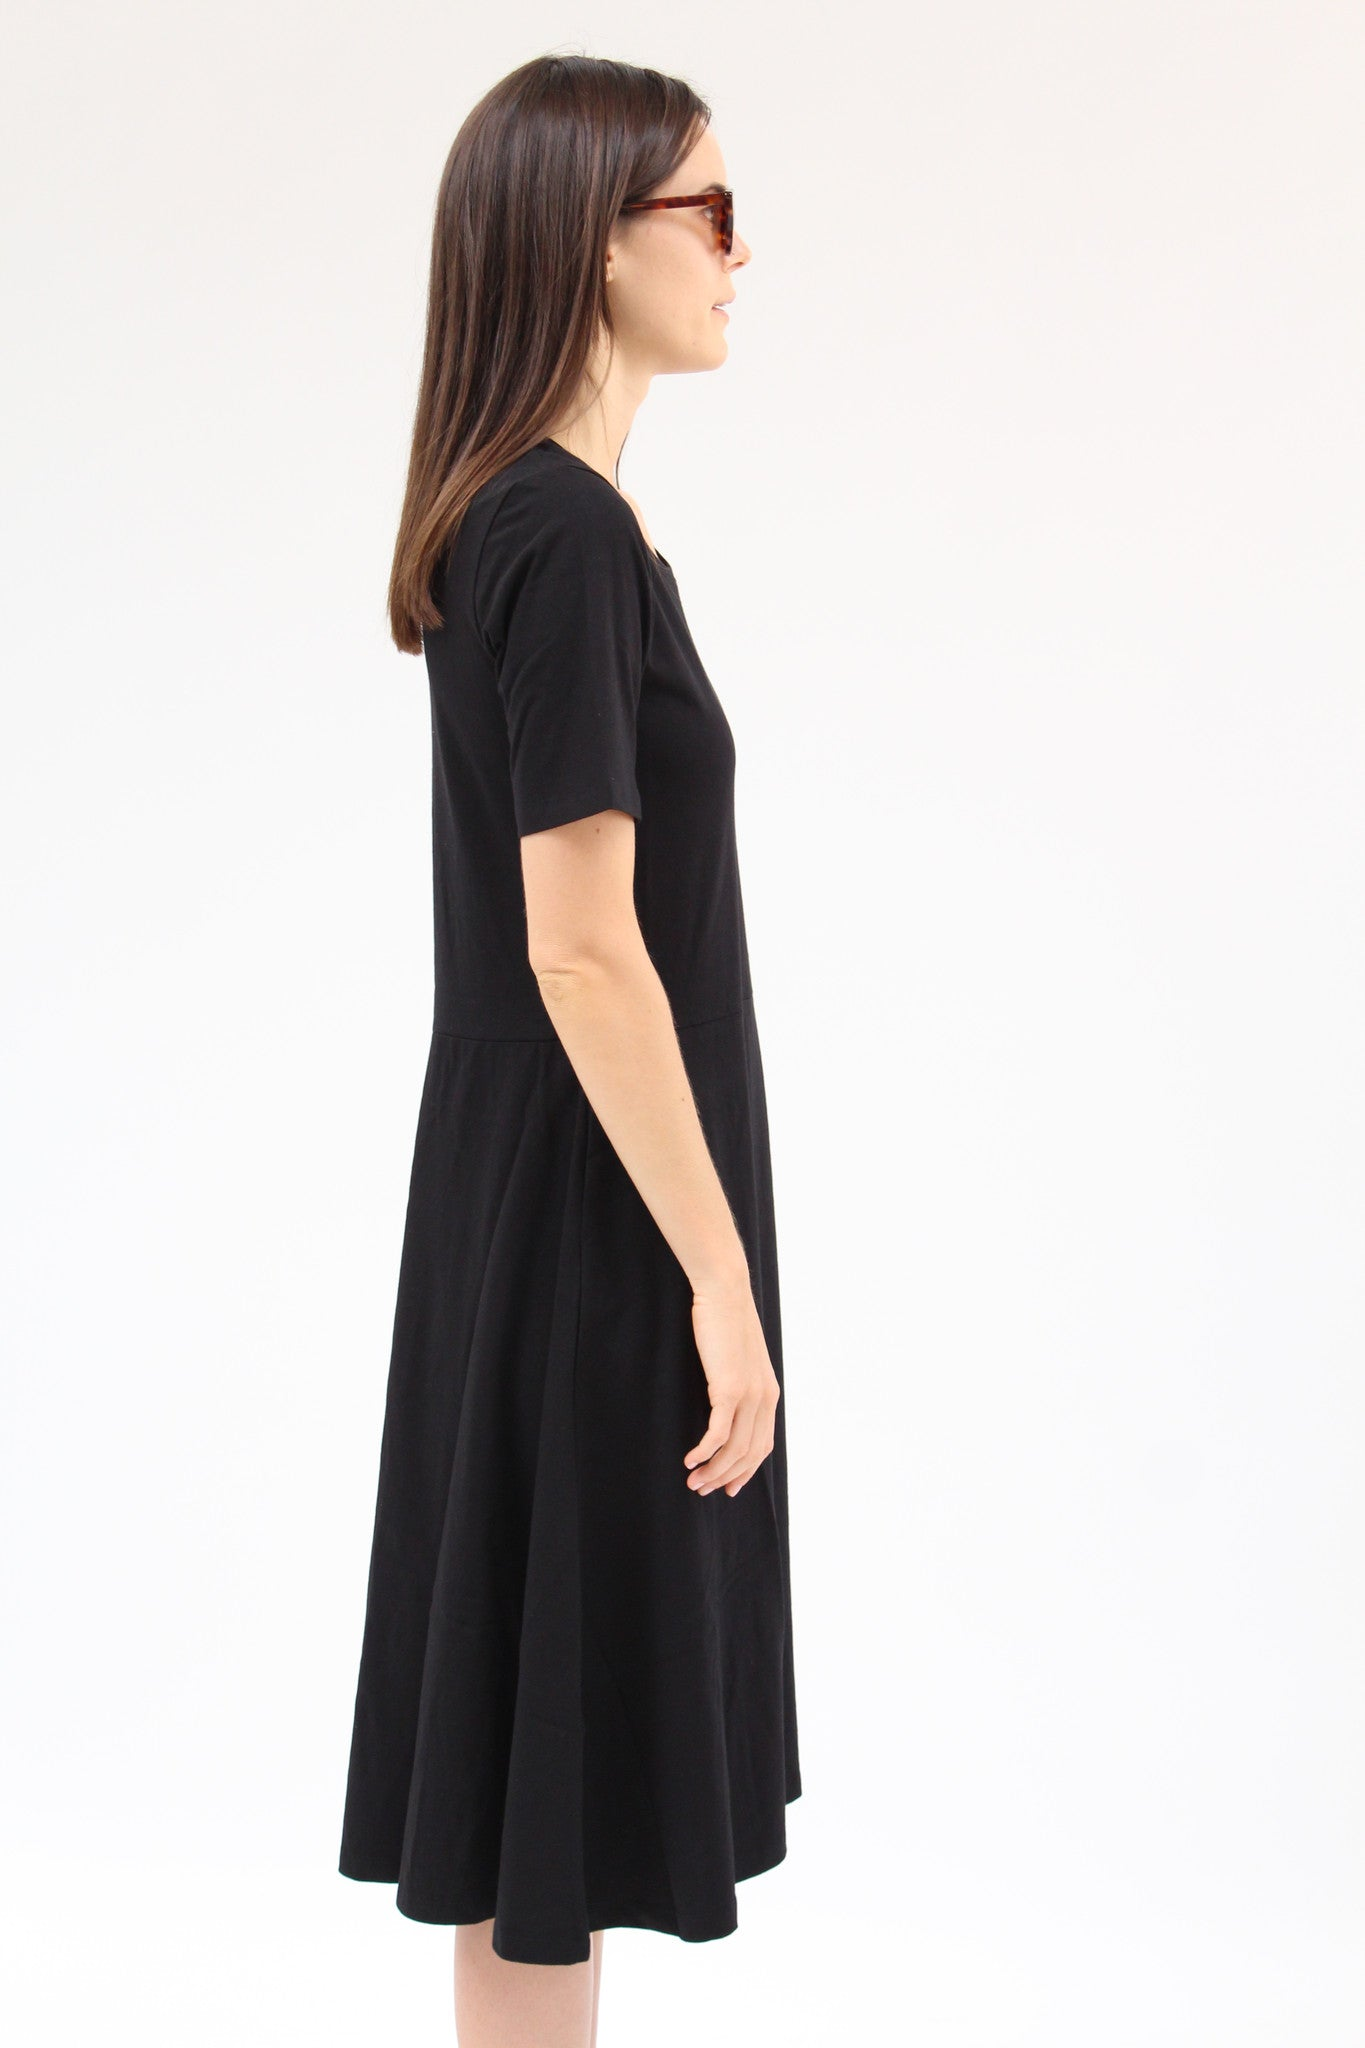 Kowtow Composure Dress Black / Beklina